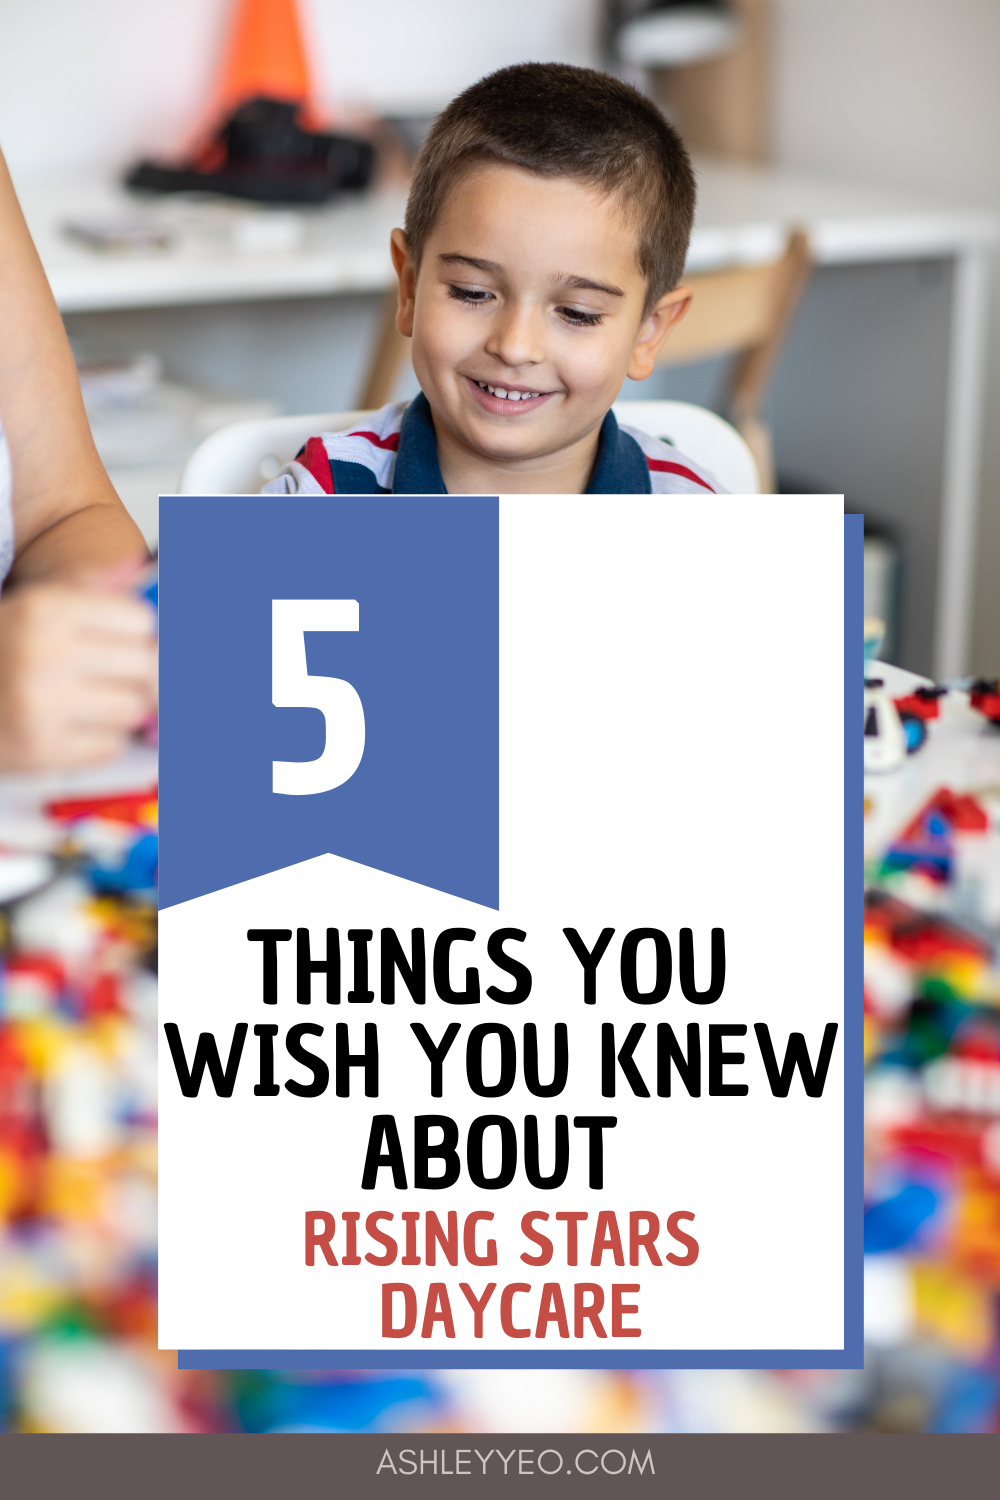 Five Things You Wish You Knew About Rising Stars Daycare